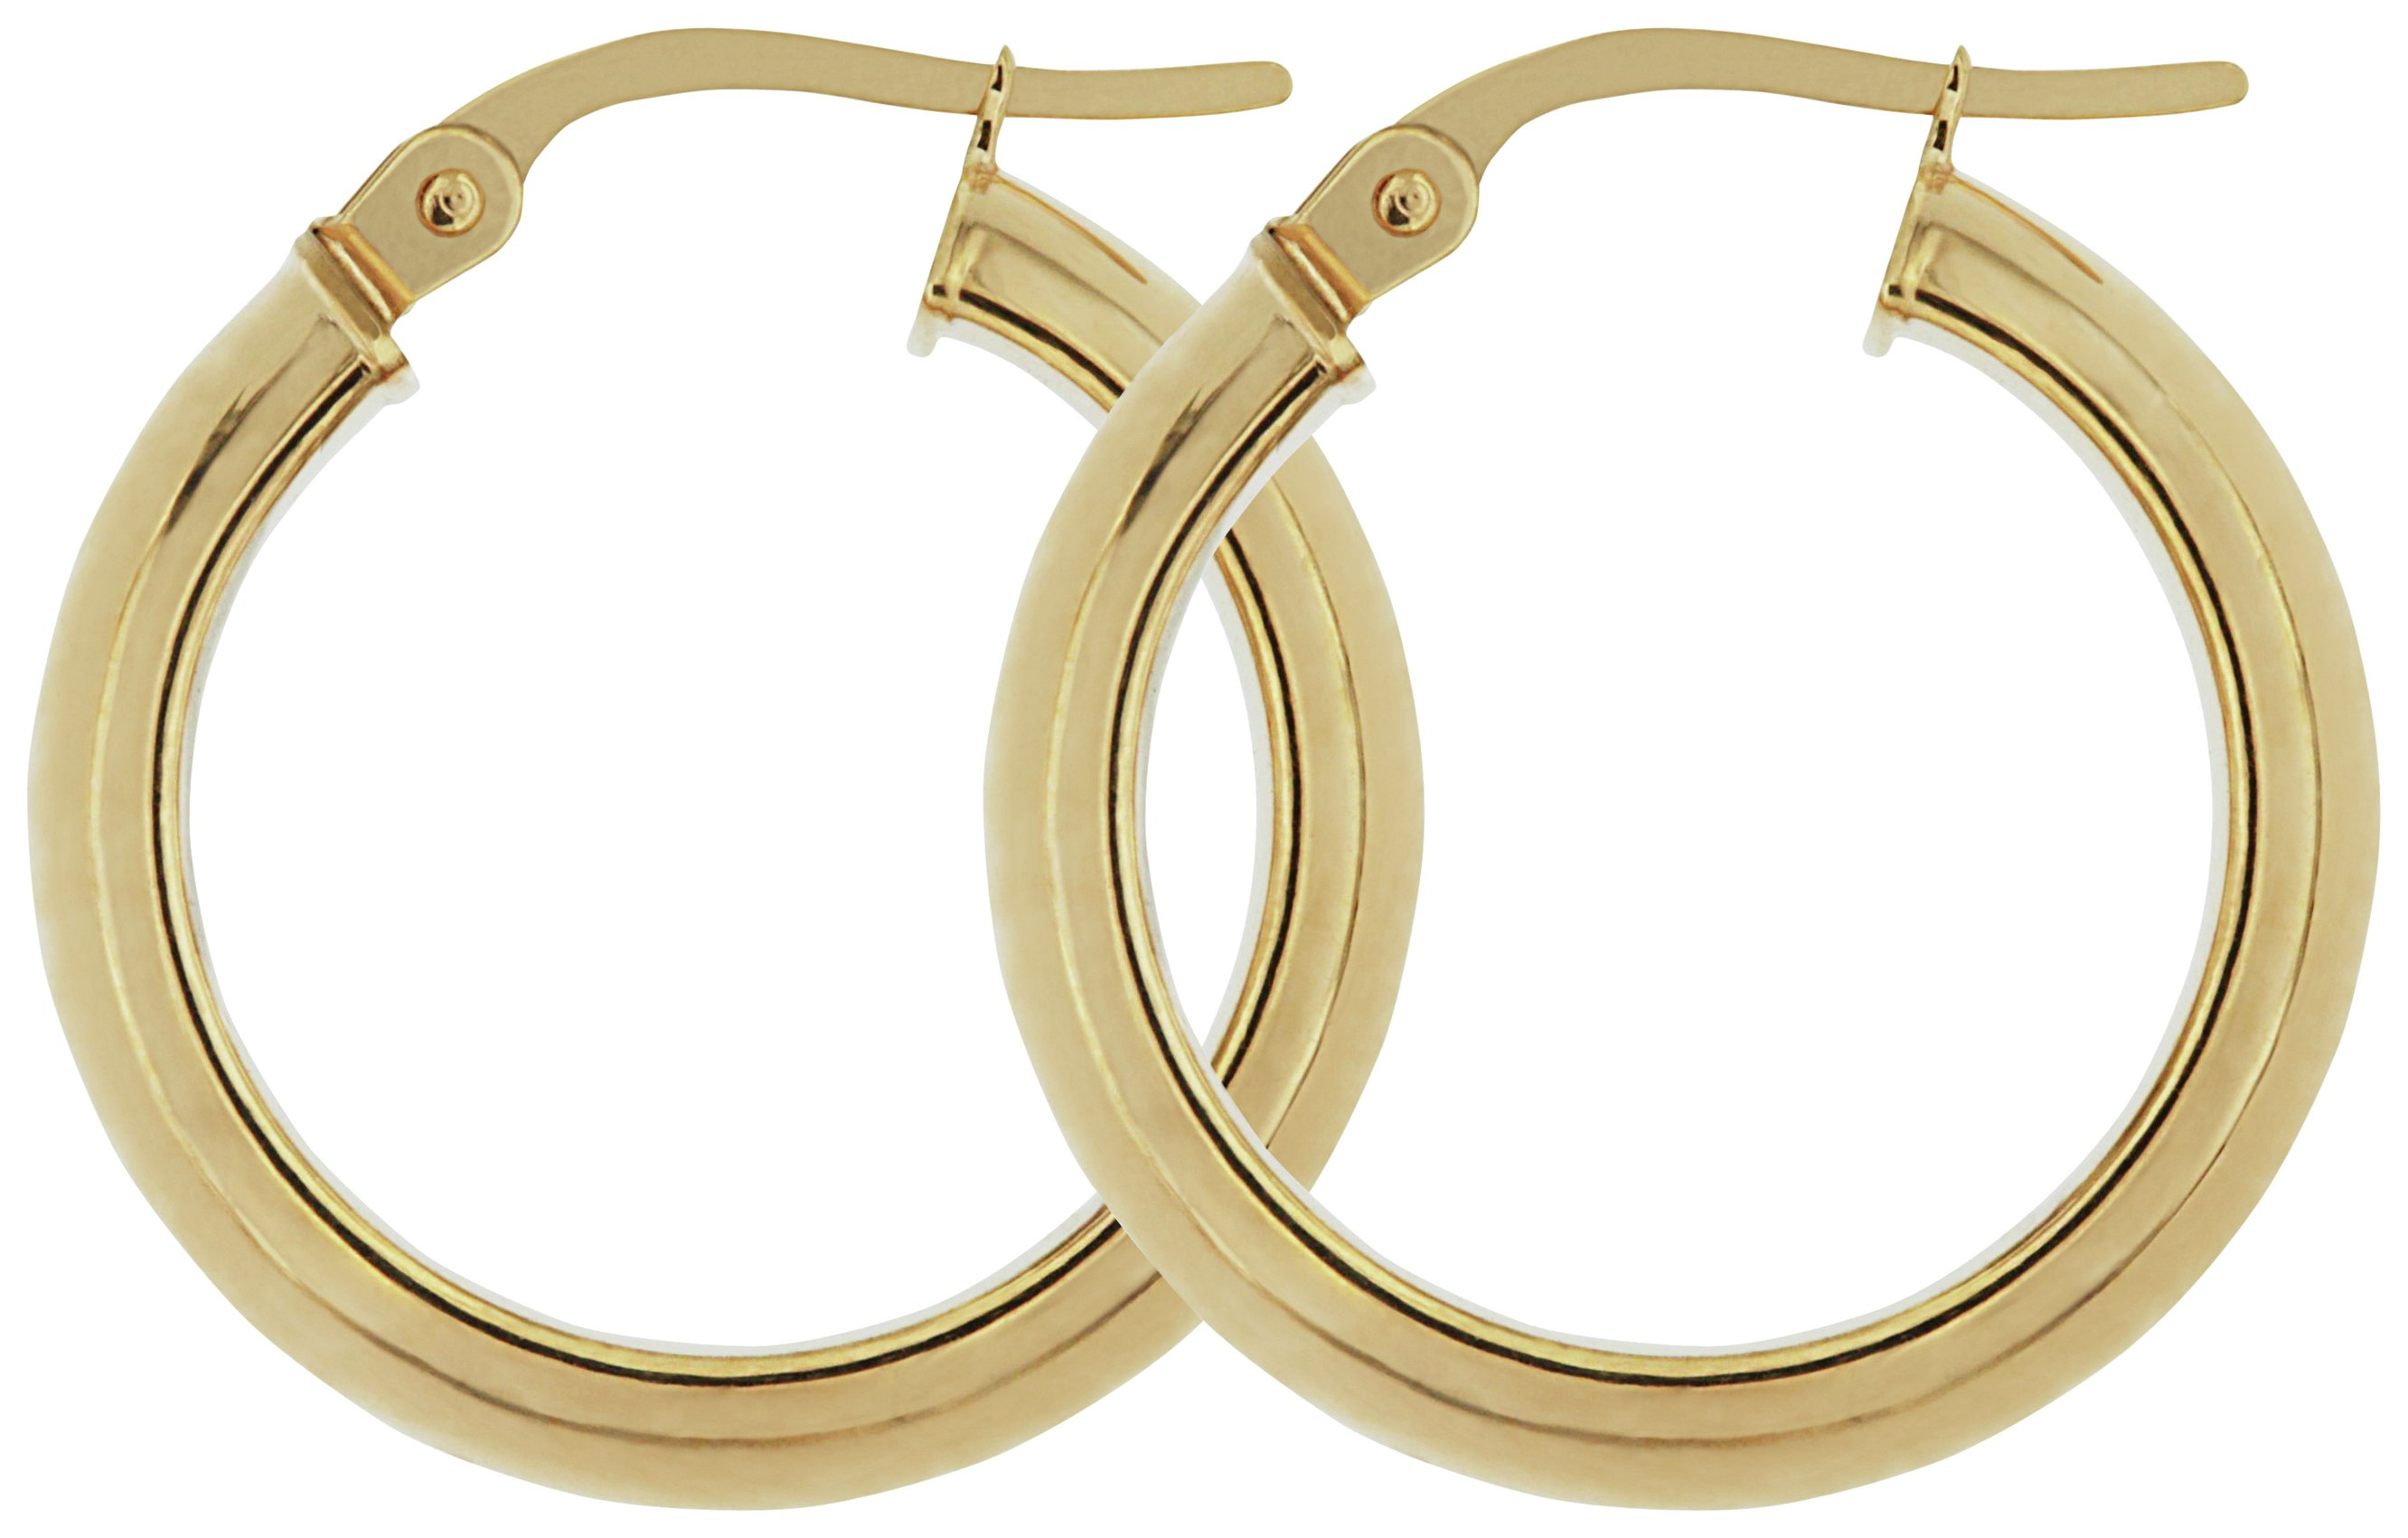 Image of Bracci - 9 Carat Gold - Creole - Hoop Earrings.